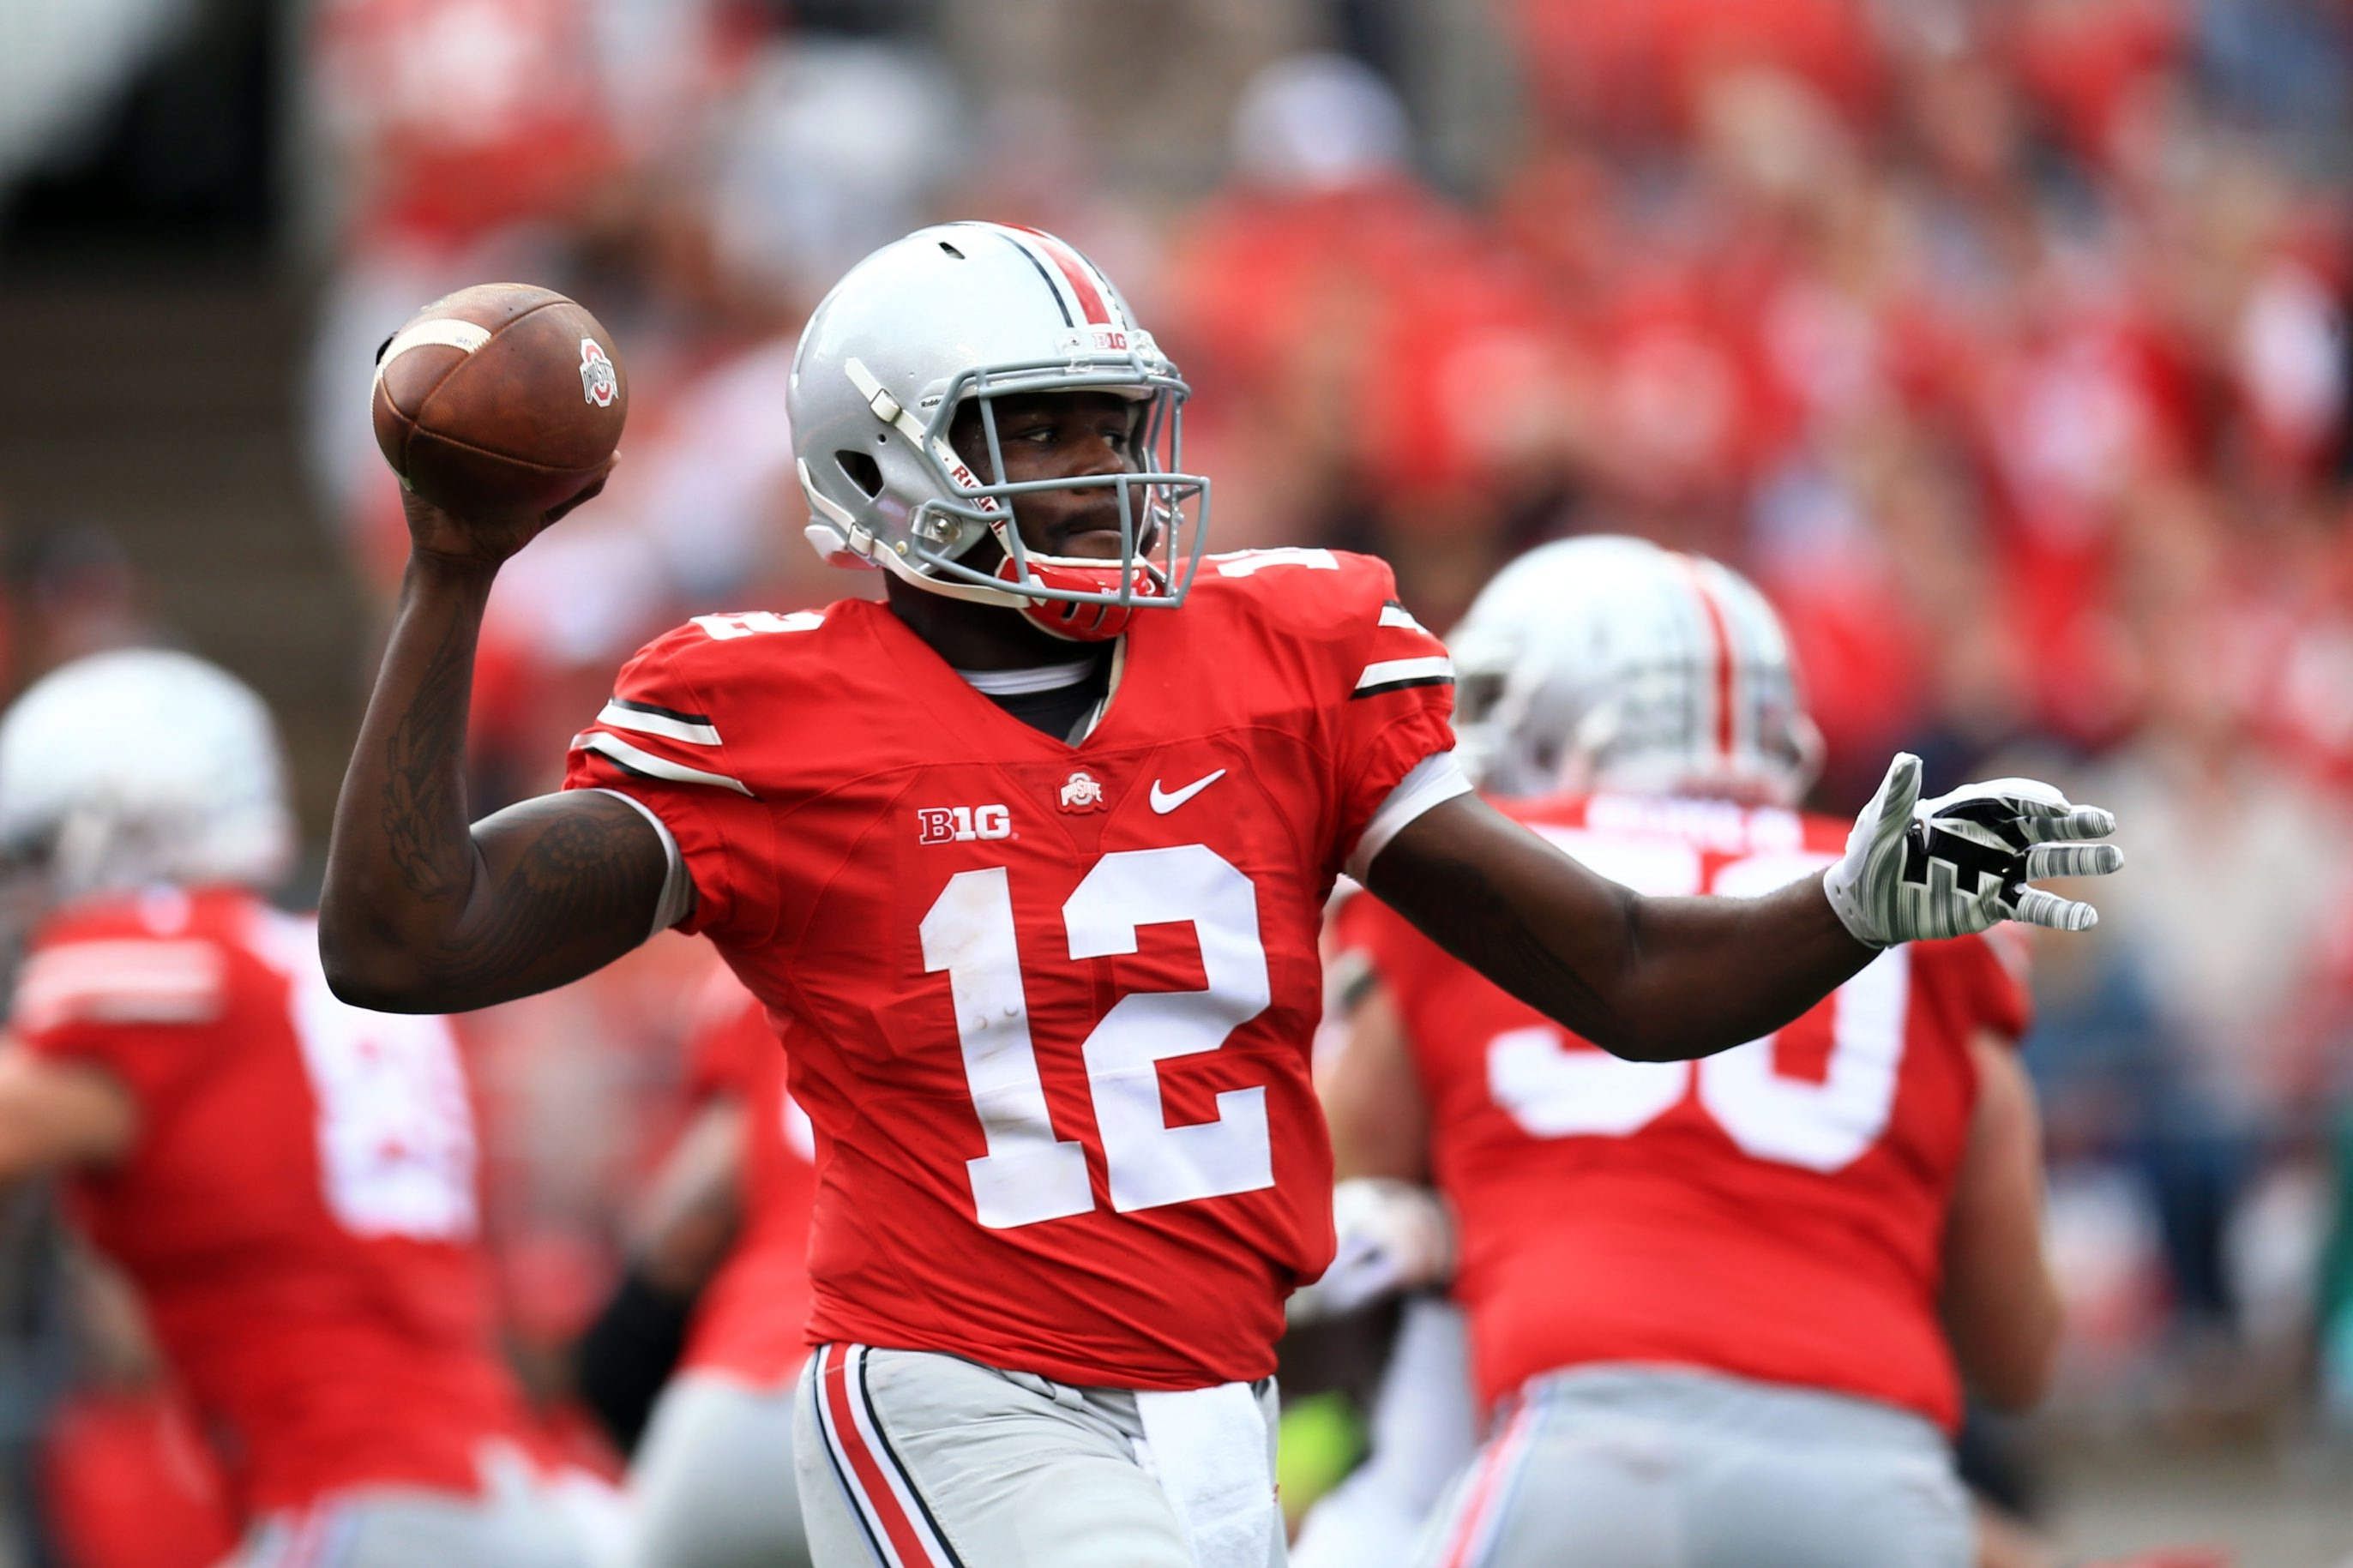 Quarterback Cardale Jones led the Ohio State Buckeyes to a national championships in 2014.